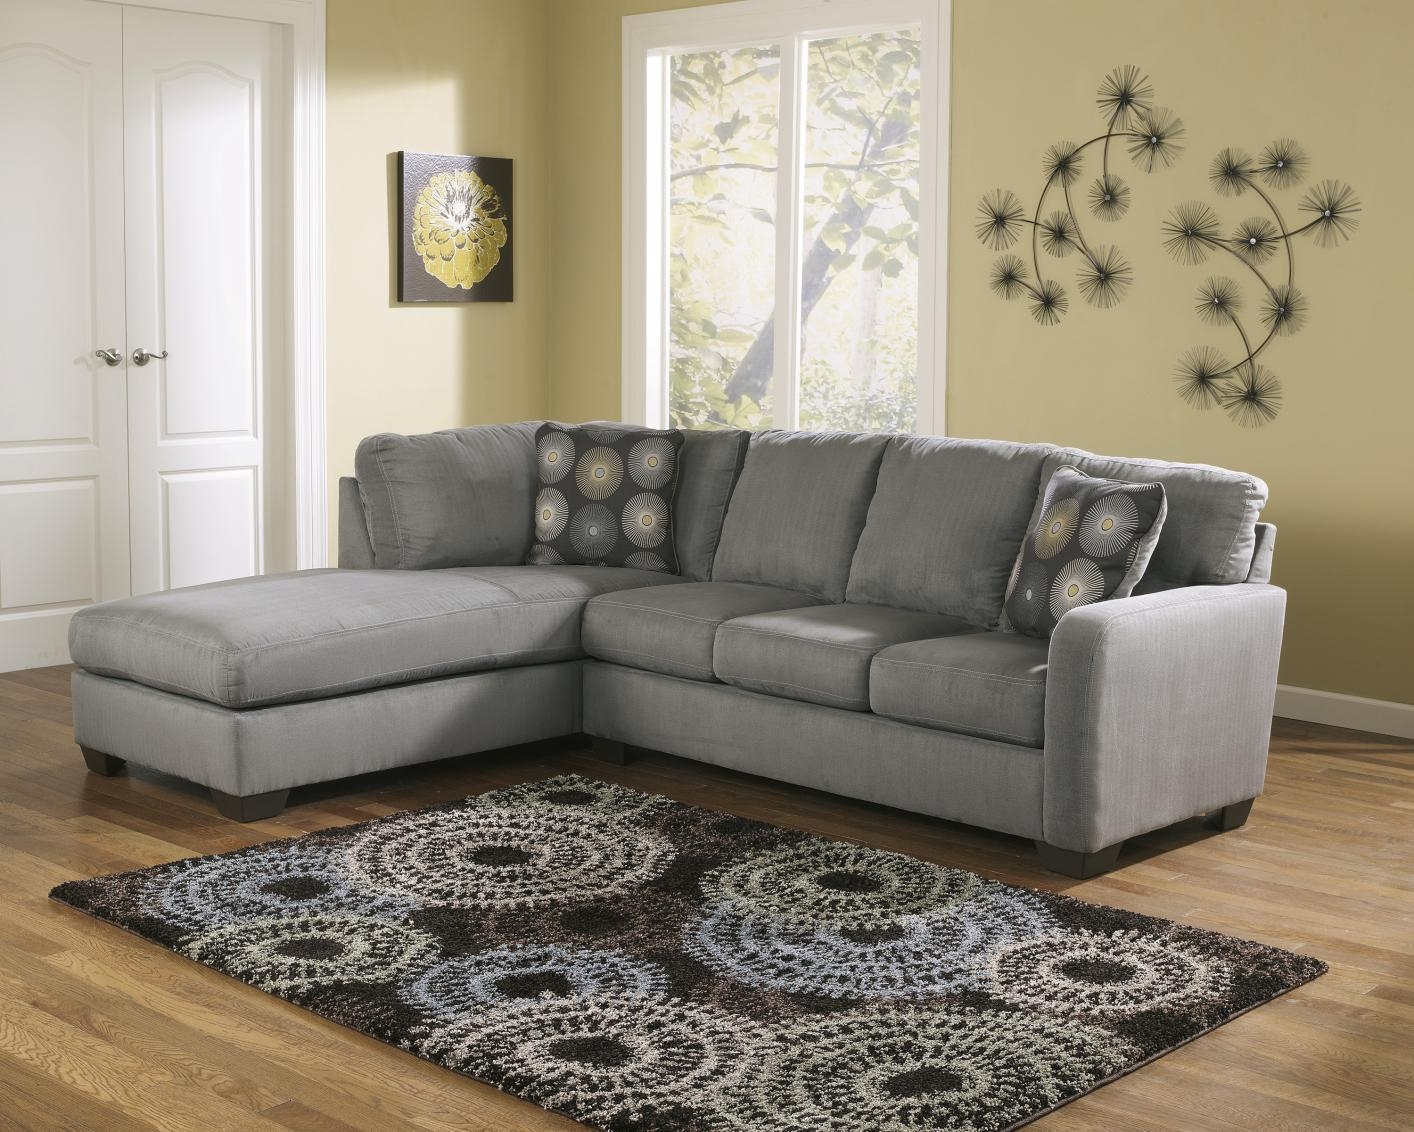 Grey Fabric Sectional Sofa – Steal A Sofa Furniture Outlet Los With Cloth Sectional Sofas (View 12 of 21)